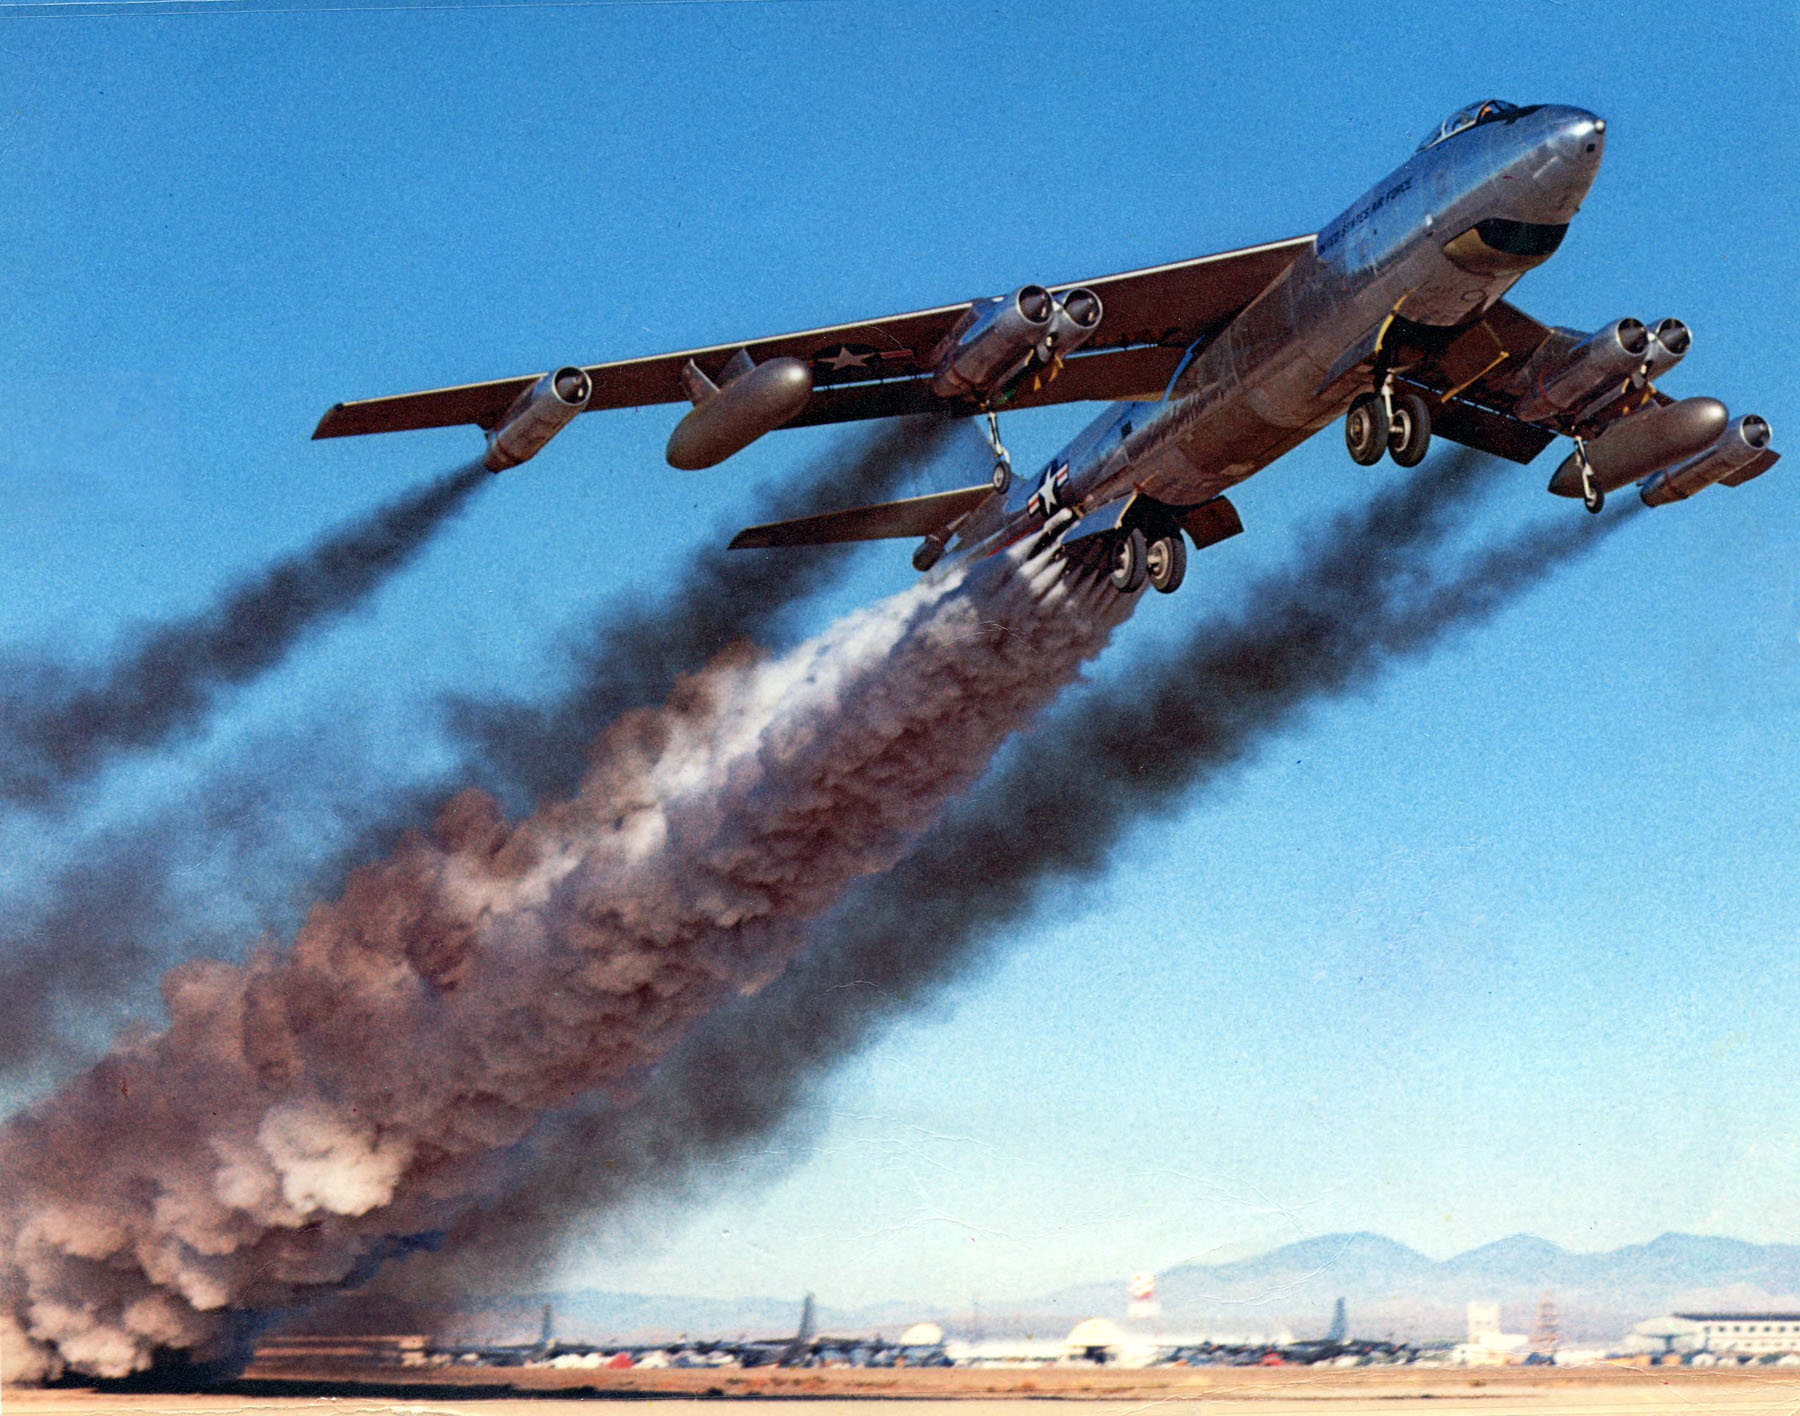 https://upload.wikimedia.org/wikipedia/commons/8/81/Boeing_B-47B_rocket-assisted_take_off_on_April_15,_1954_061024-F-1234S-011.jpg